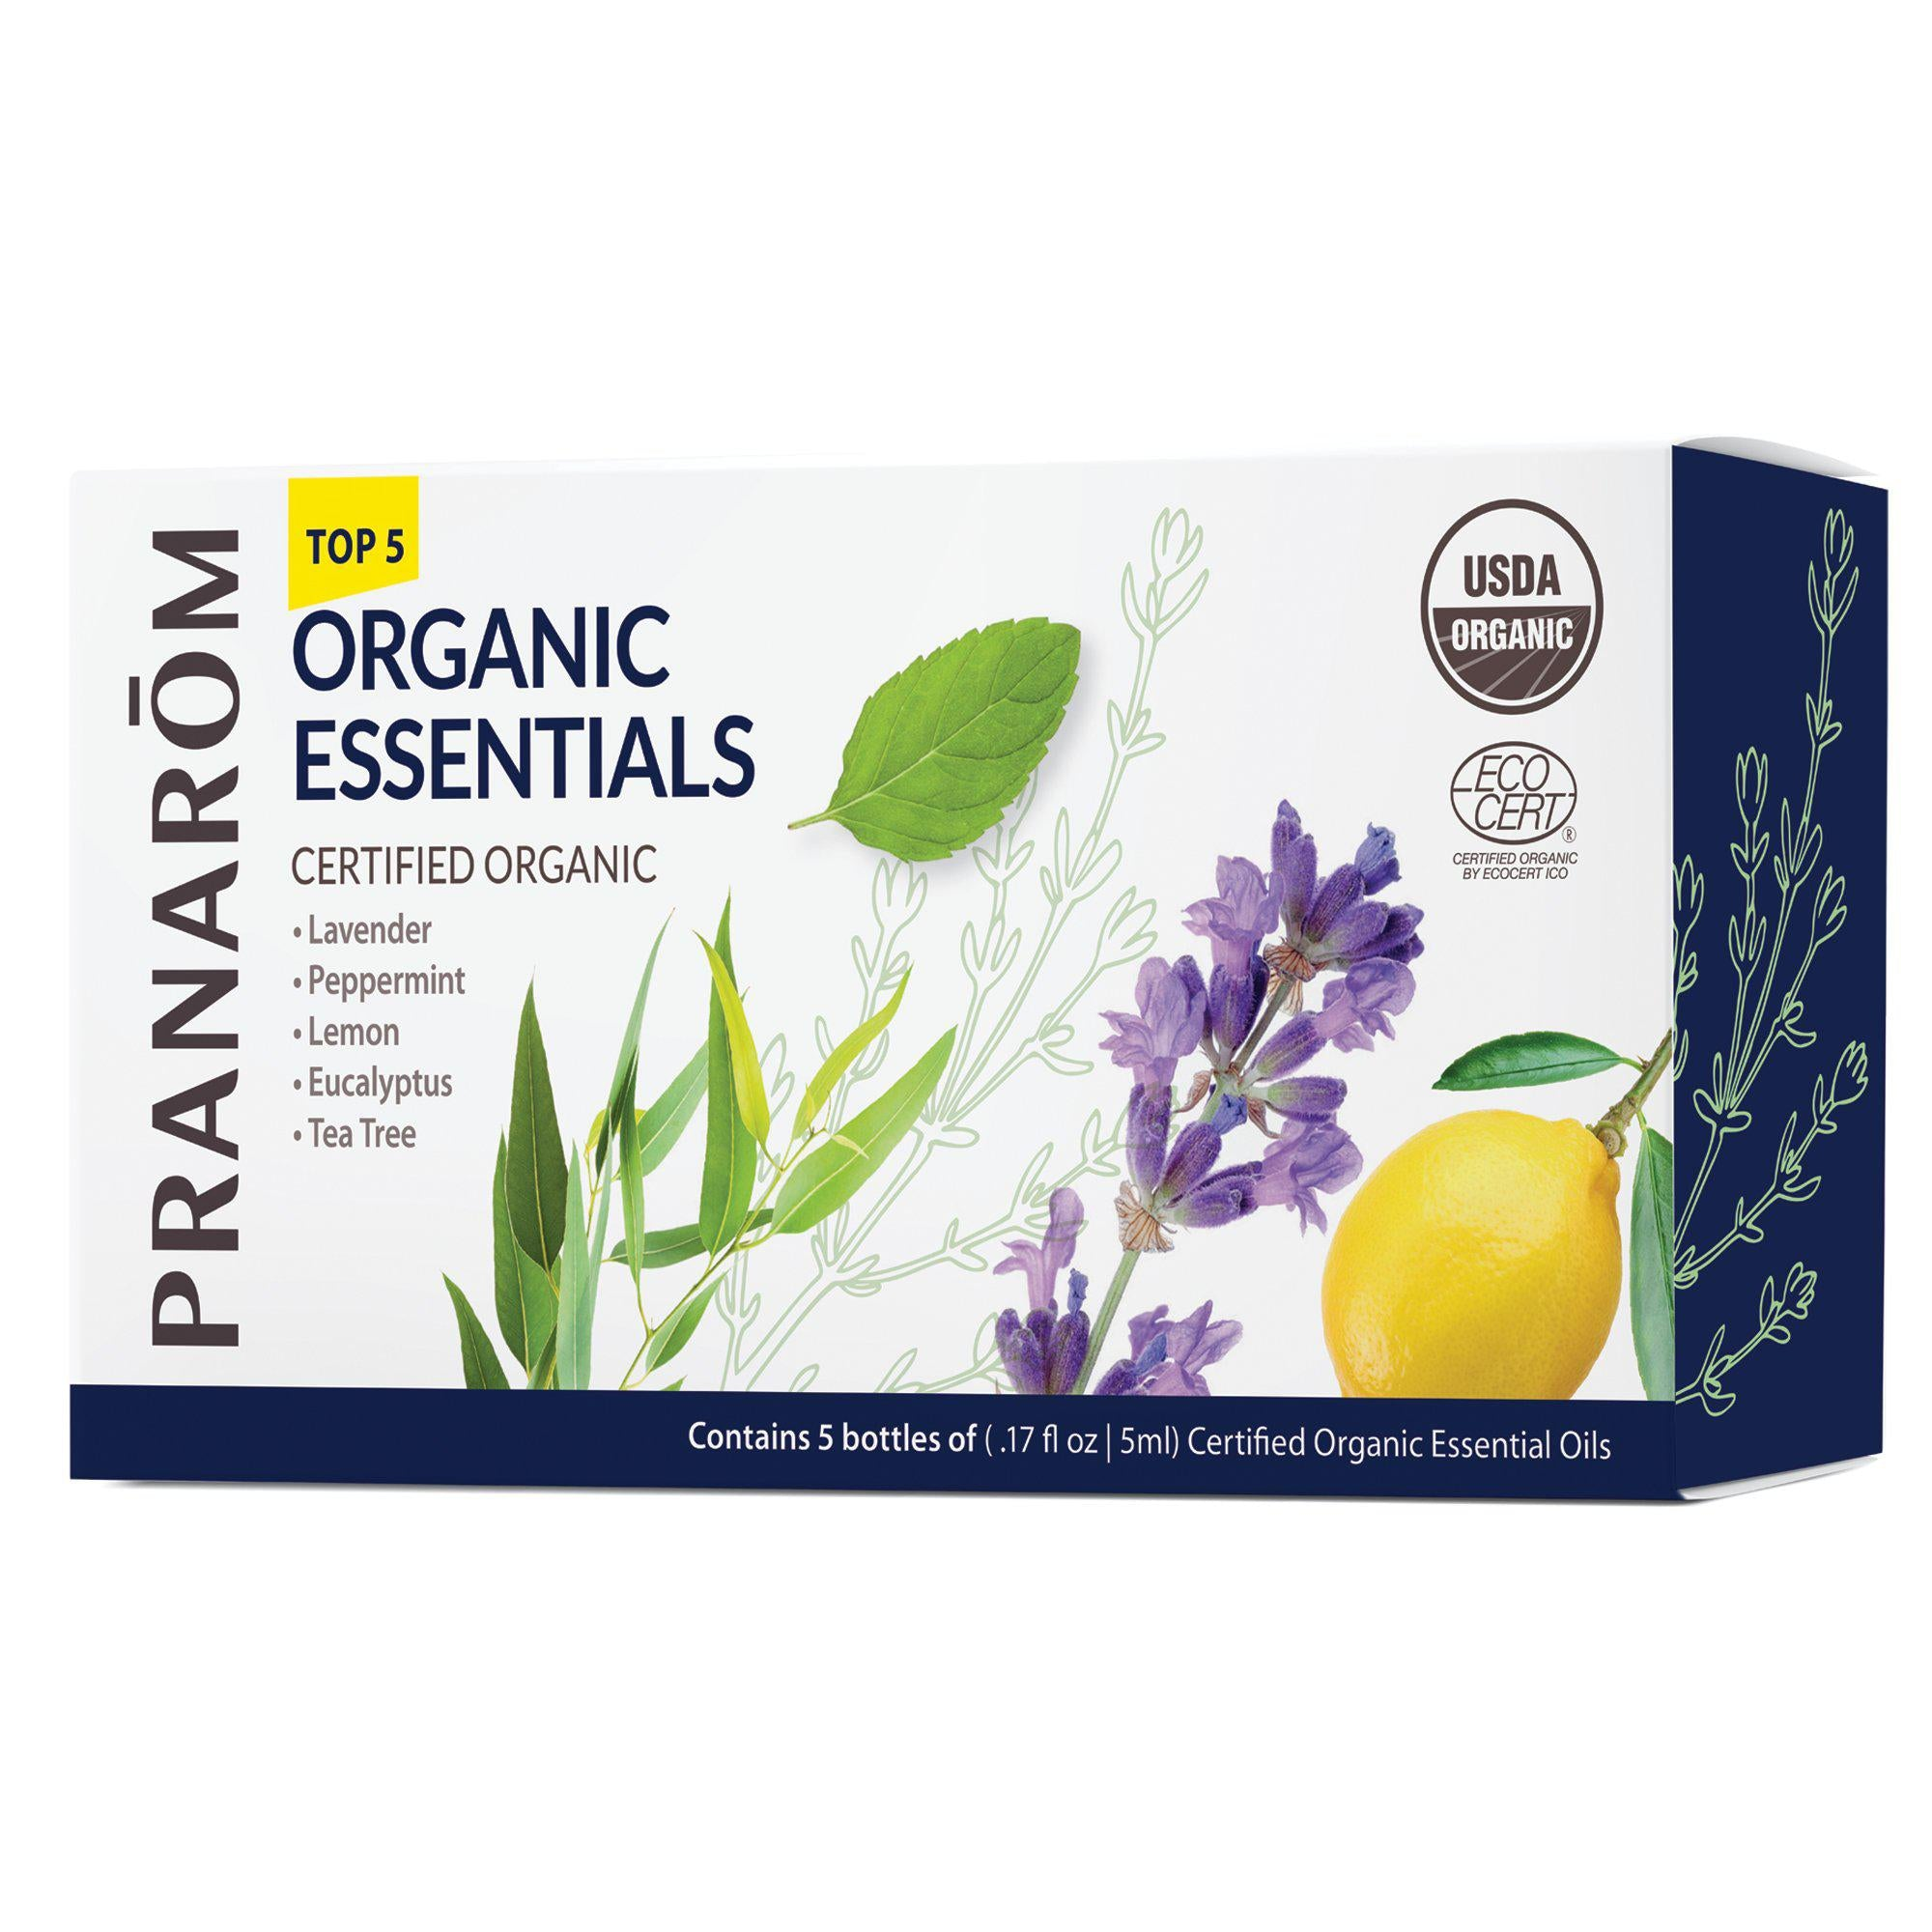 Top 5 Organic Essentials